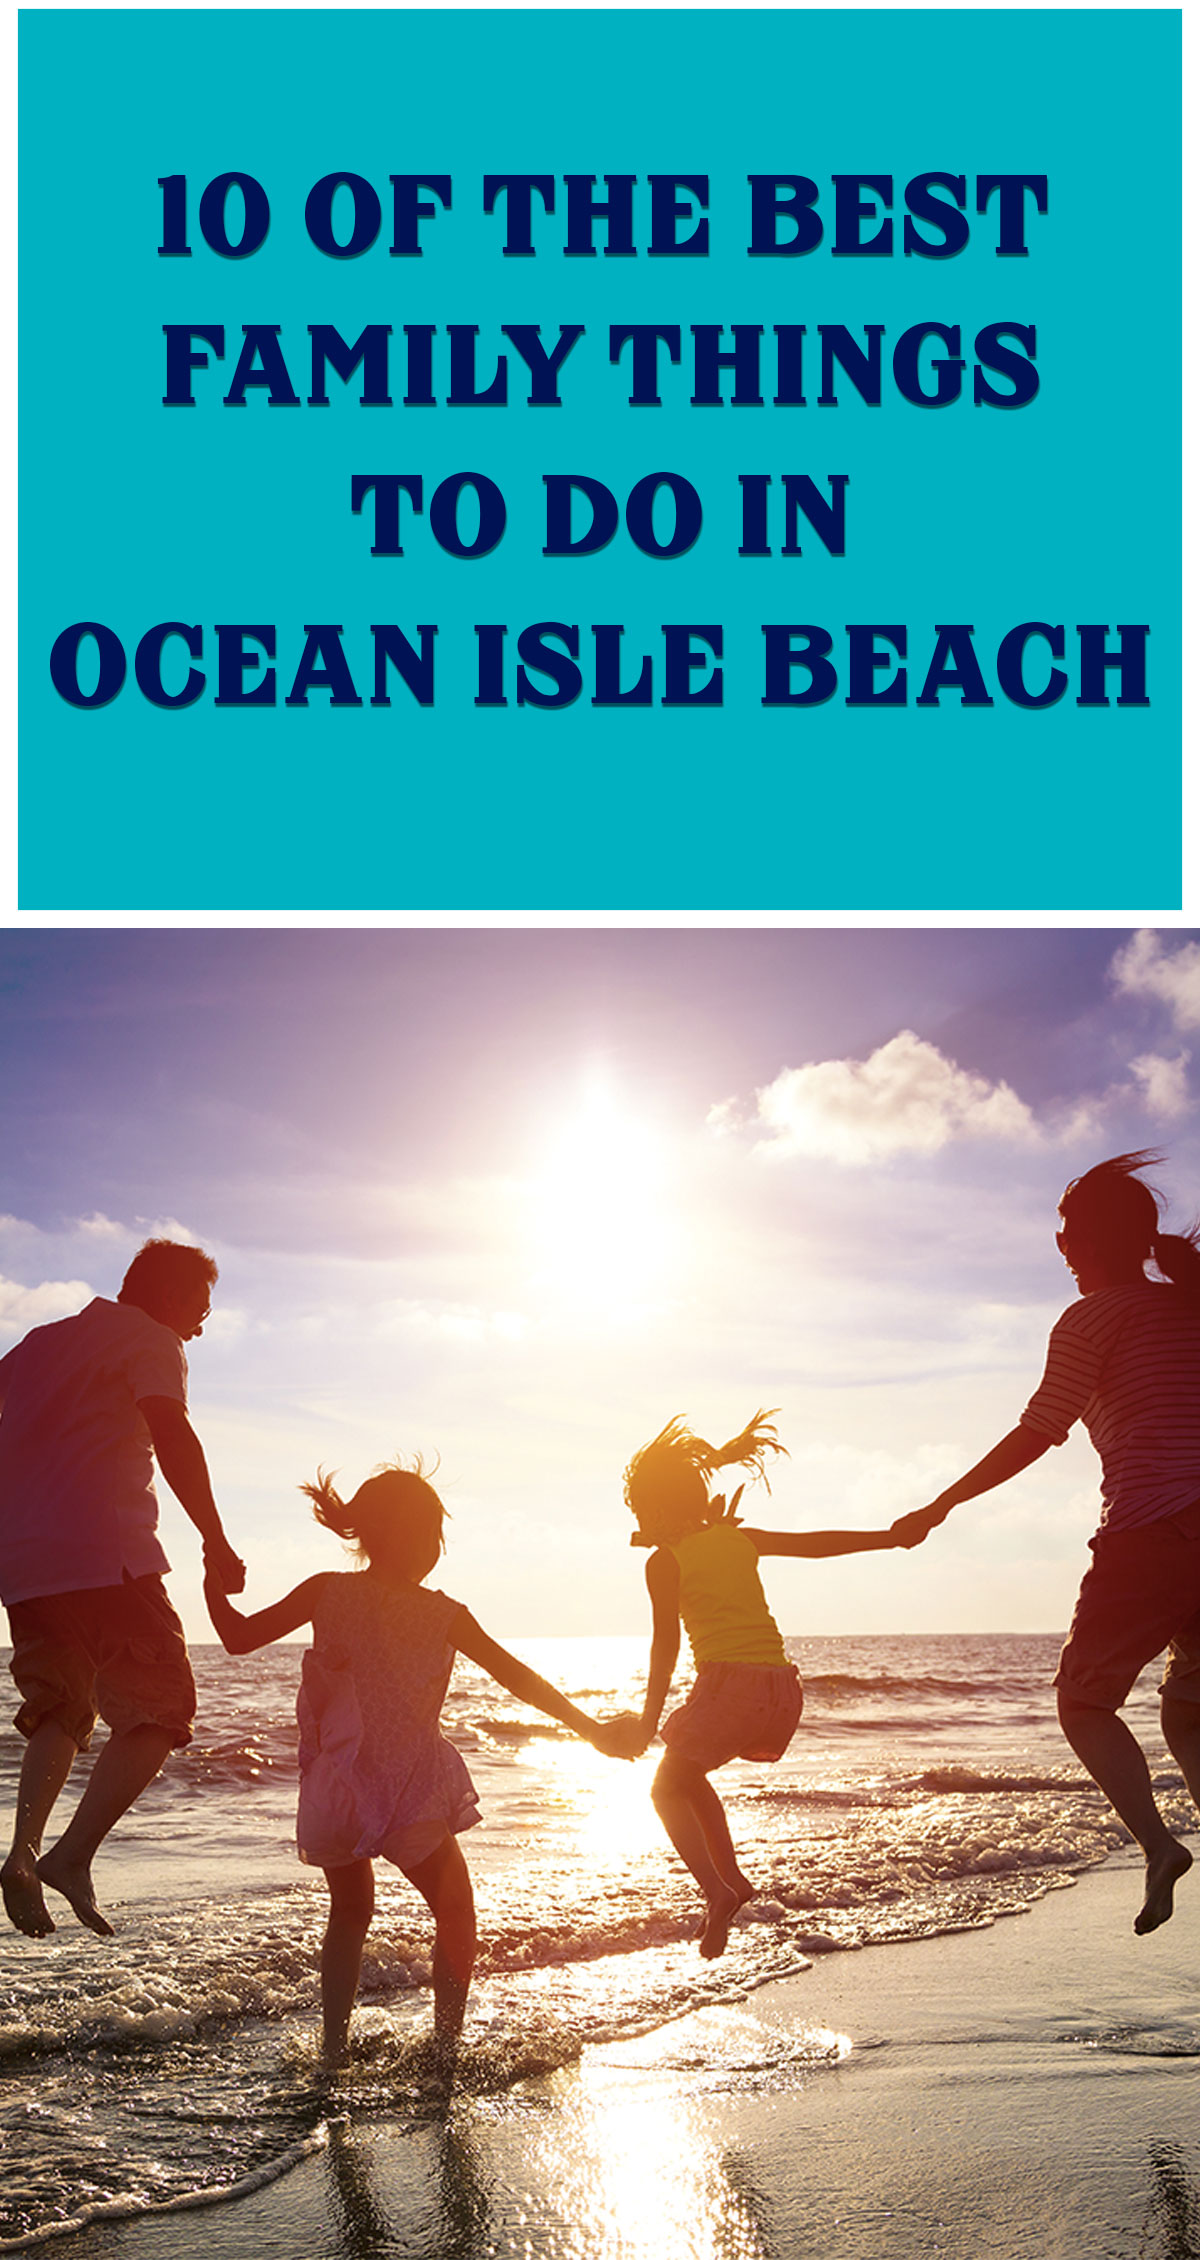 10 of the Best Family Things To Do in Ocean Isle Beach Pin